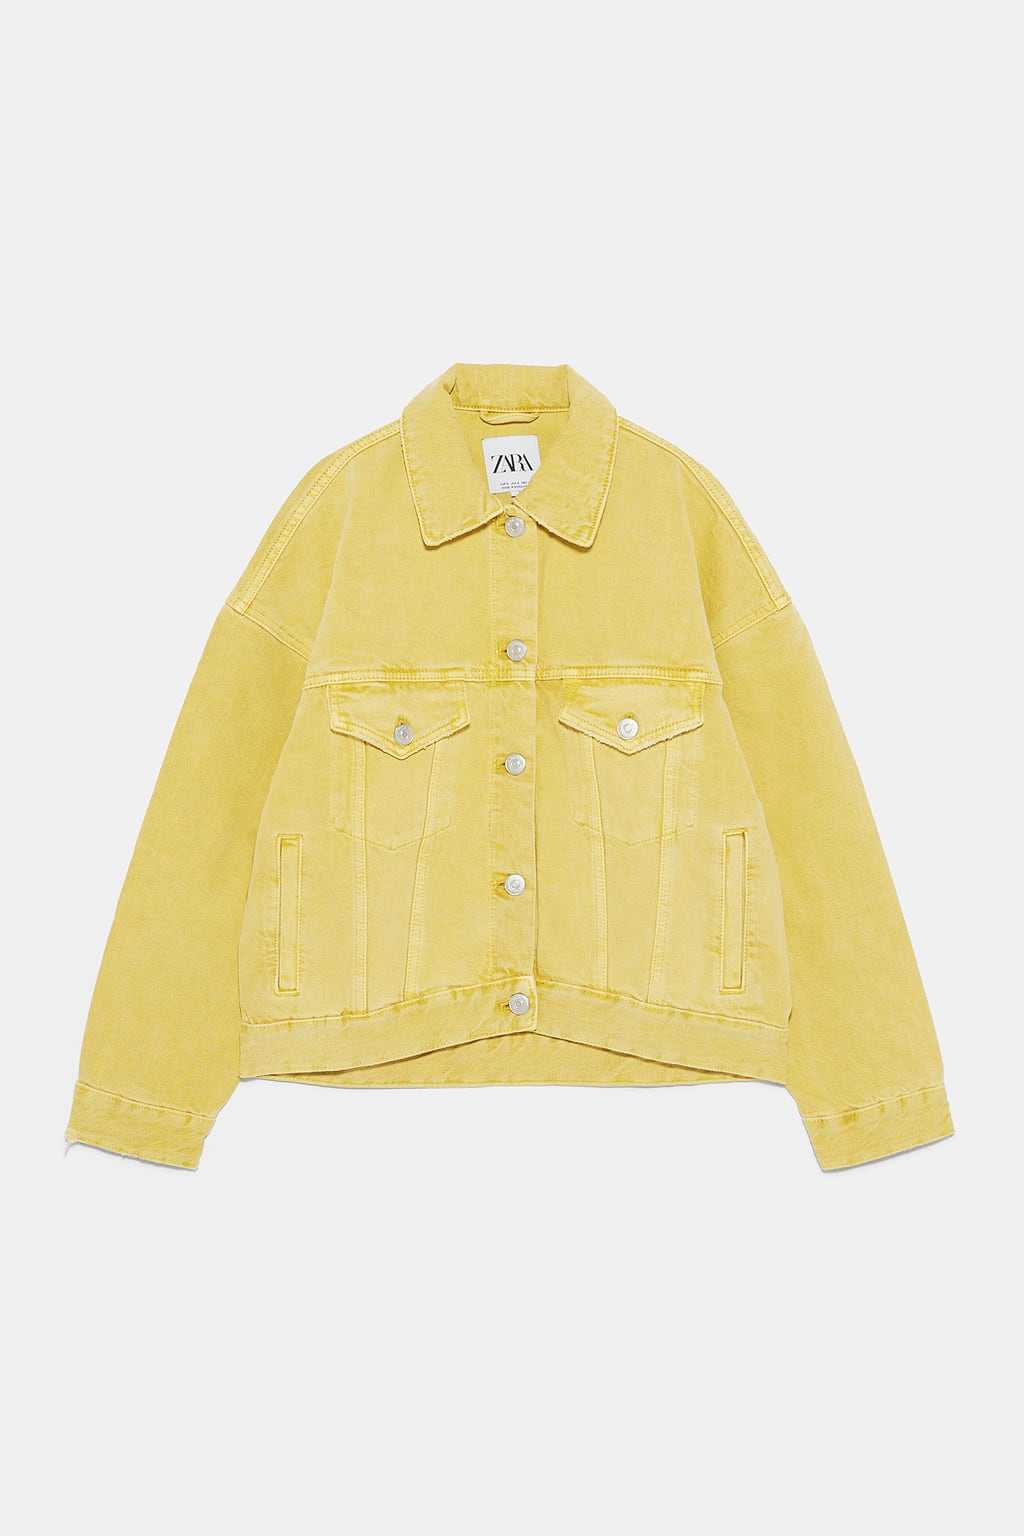 COLORED DENIM JACKET DETAILS 49.90 USD